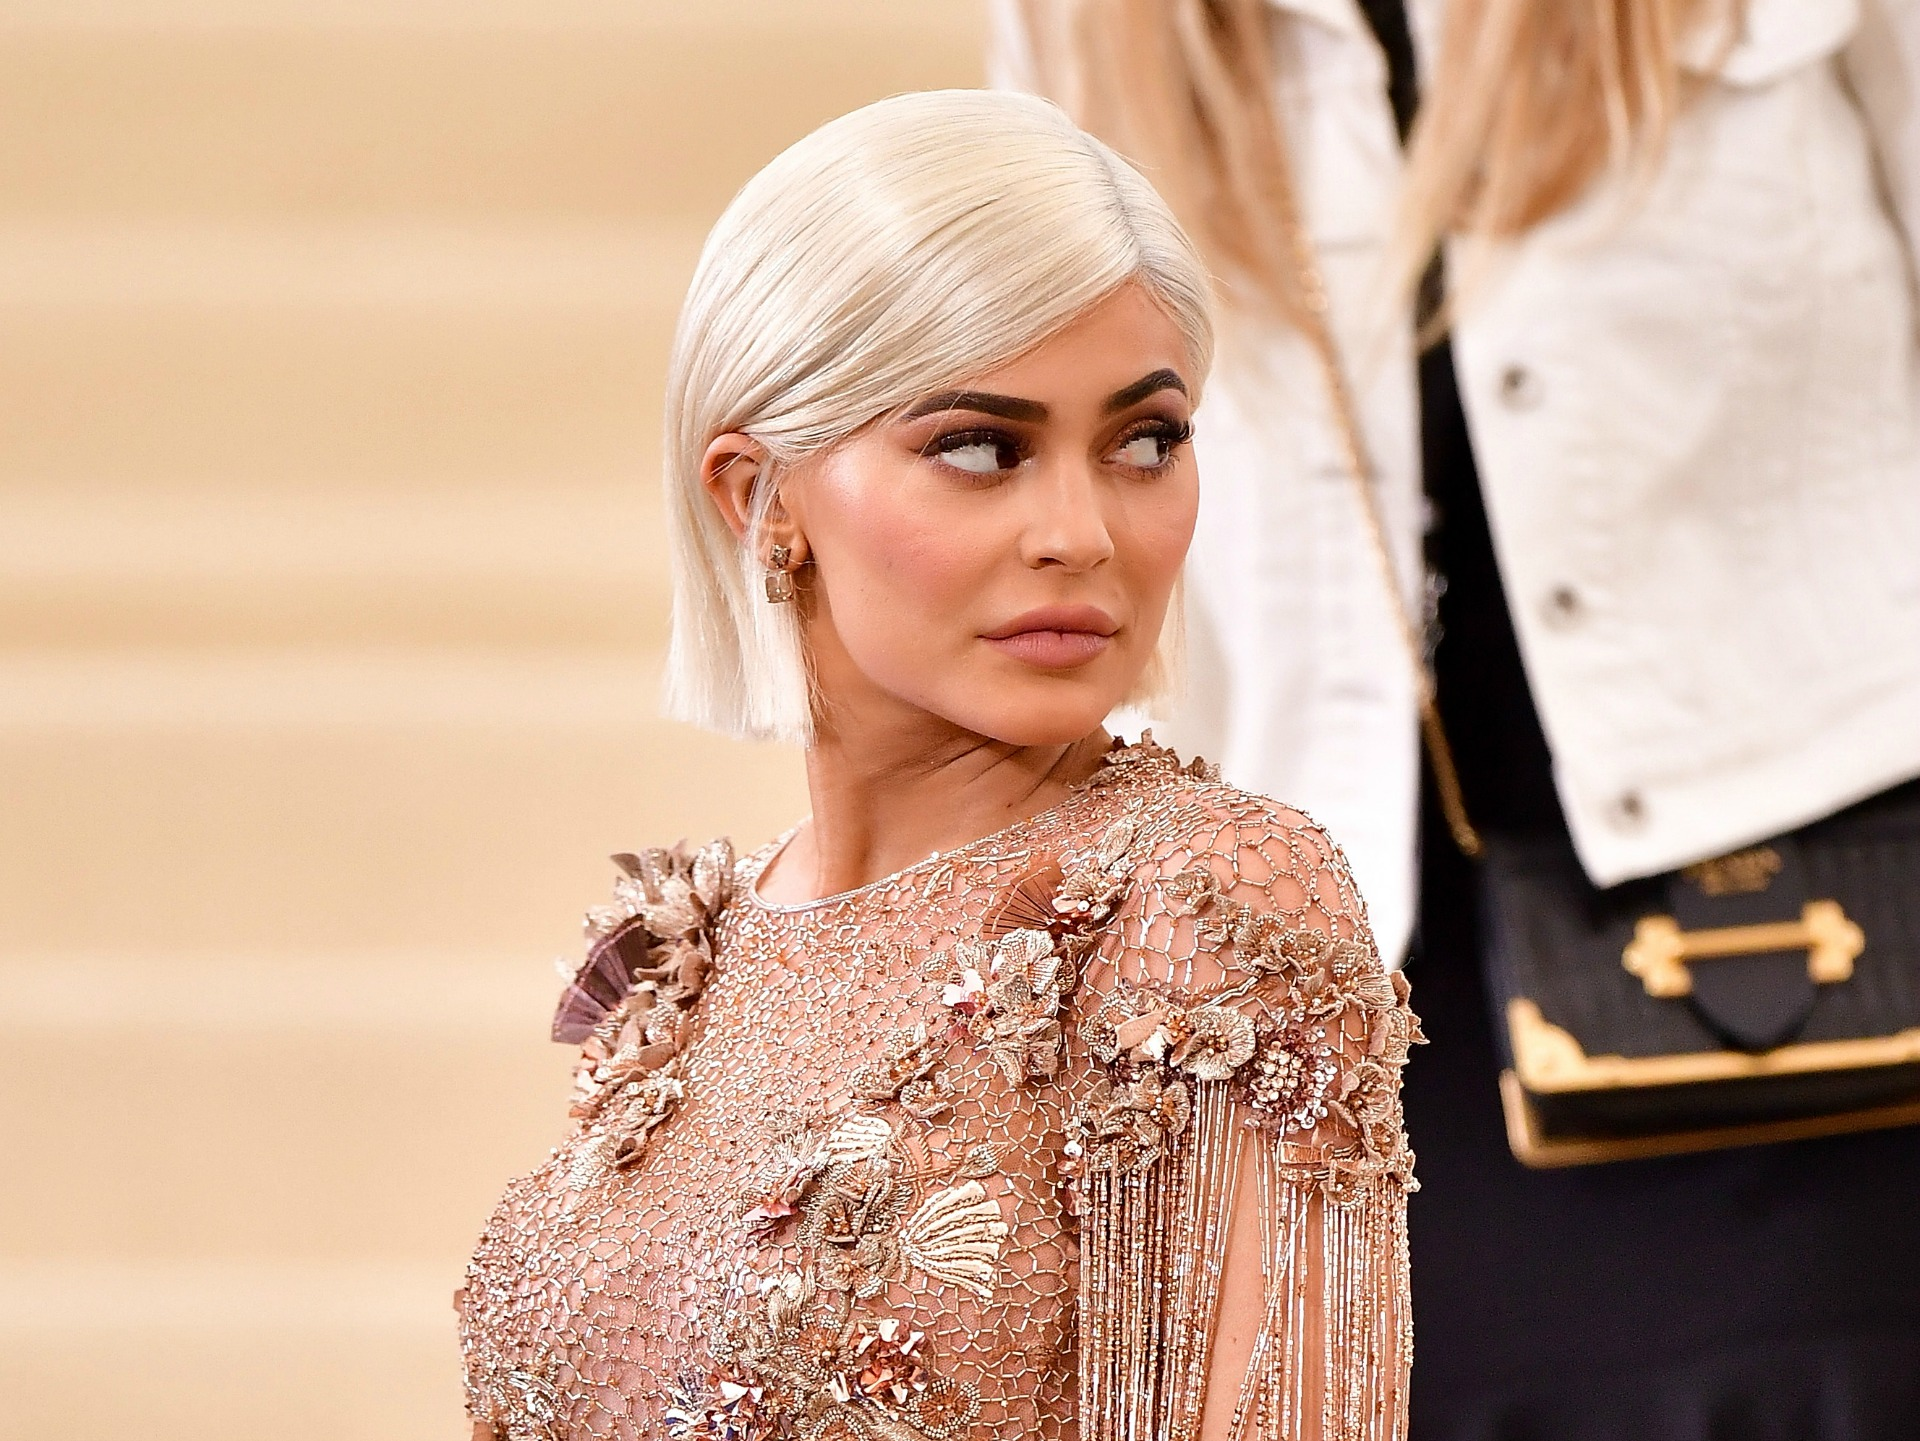 Kylie Jenner shares first photos post giving birth to daughter Stormi